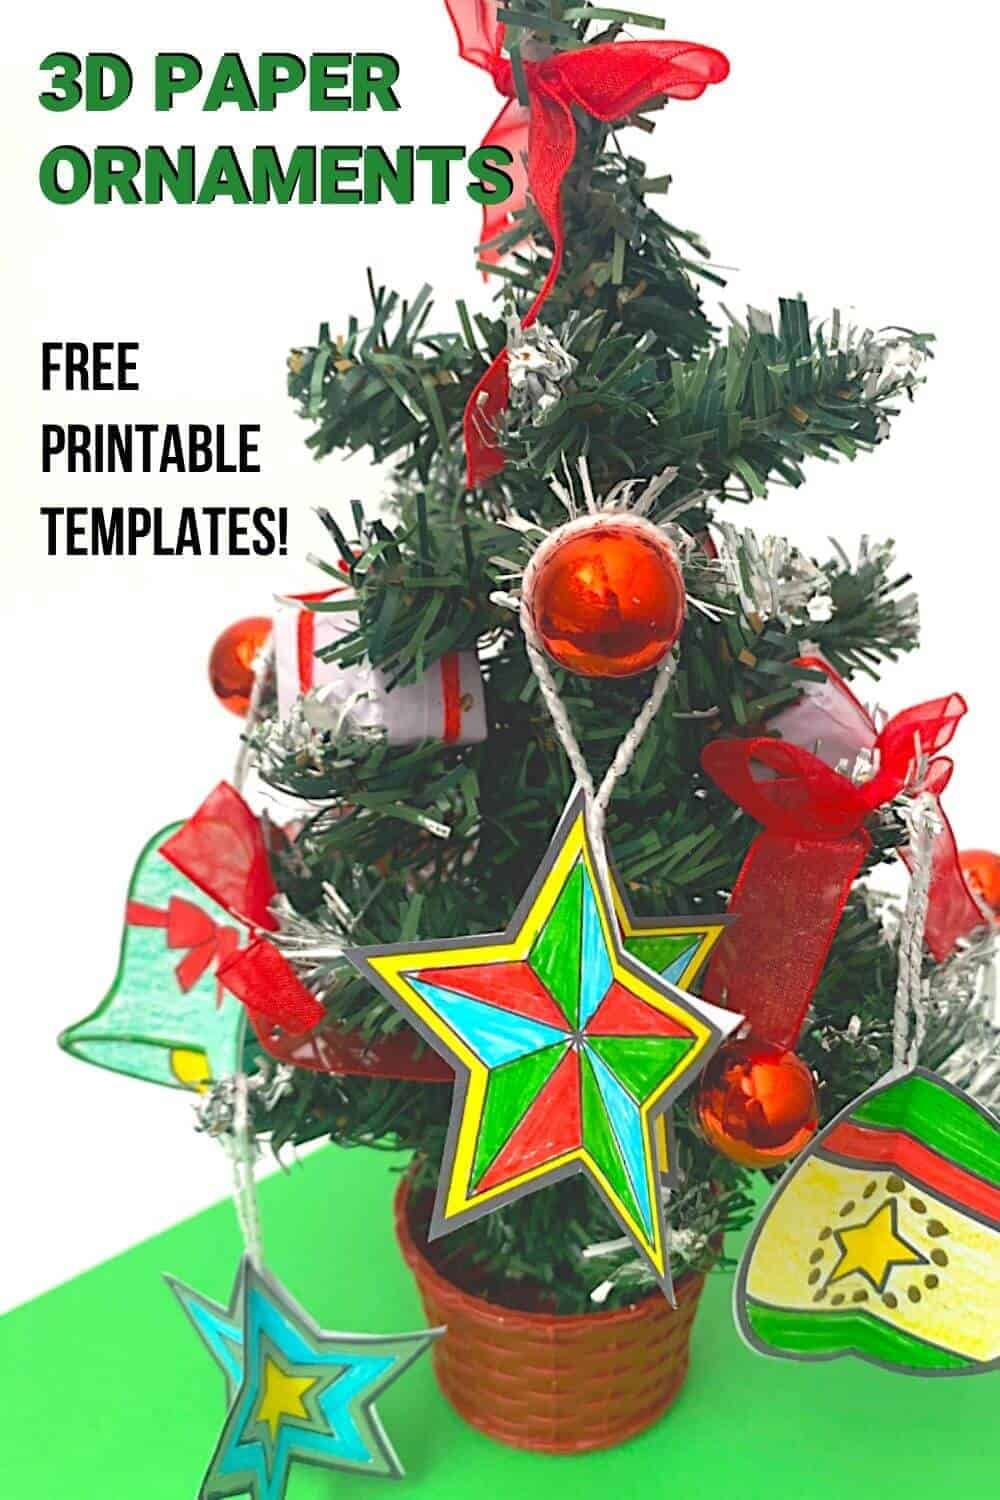 Christmas ornament crafts on a tree